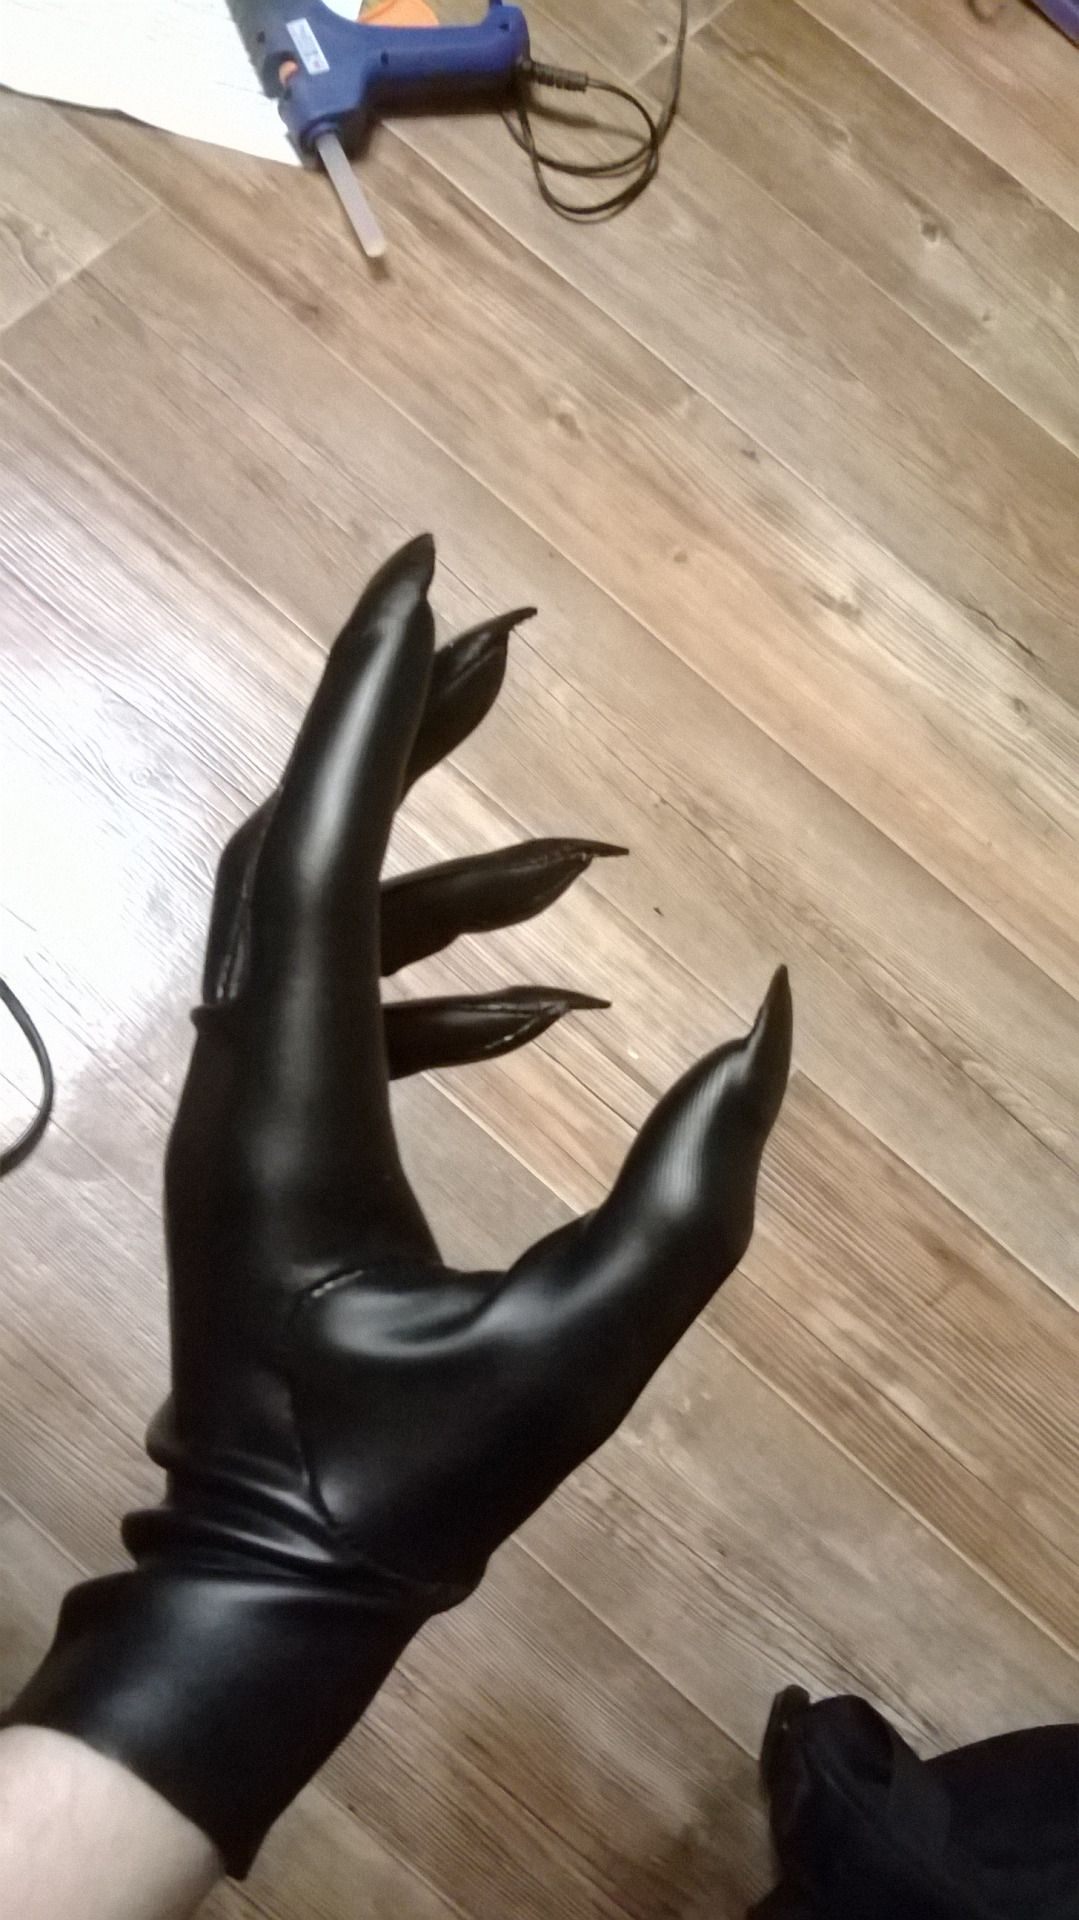 Claw gloves photo set. There's a small tutorial, but it's basic, minimal, and really more of a description of the process rather than an actual tutorial. #gloves